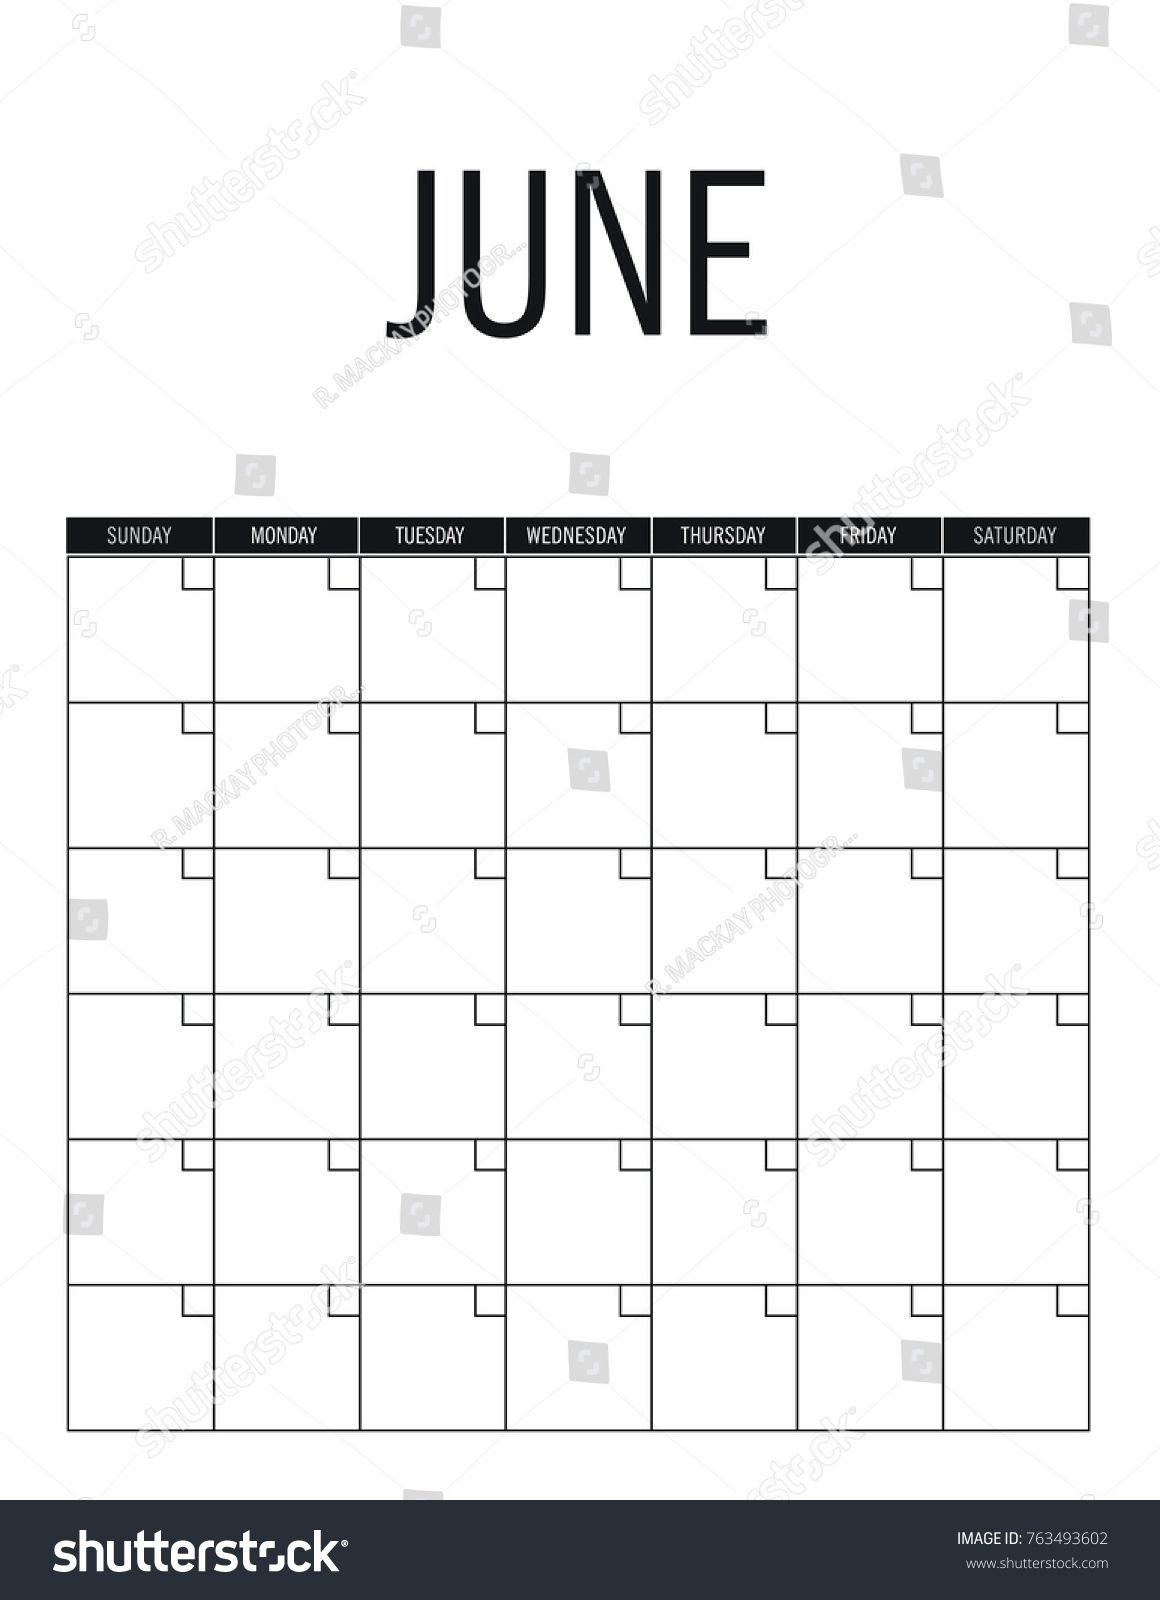 Exceptional Blank Calendar With No Dates | Printable